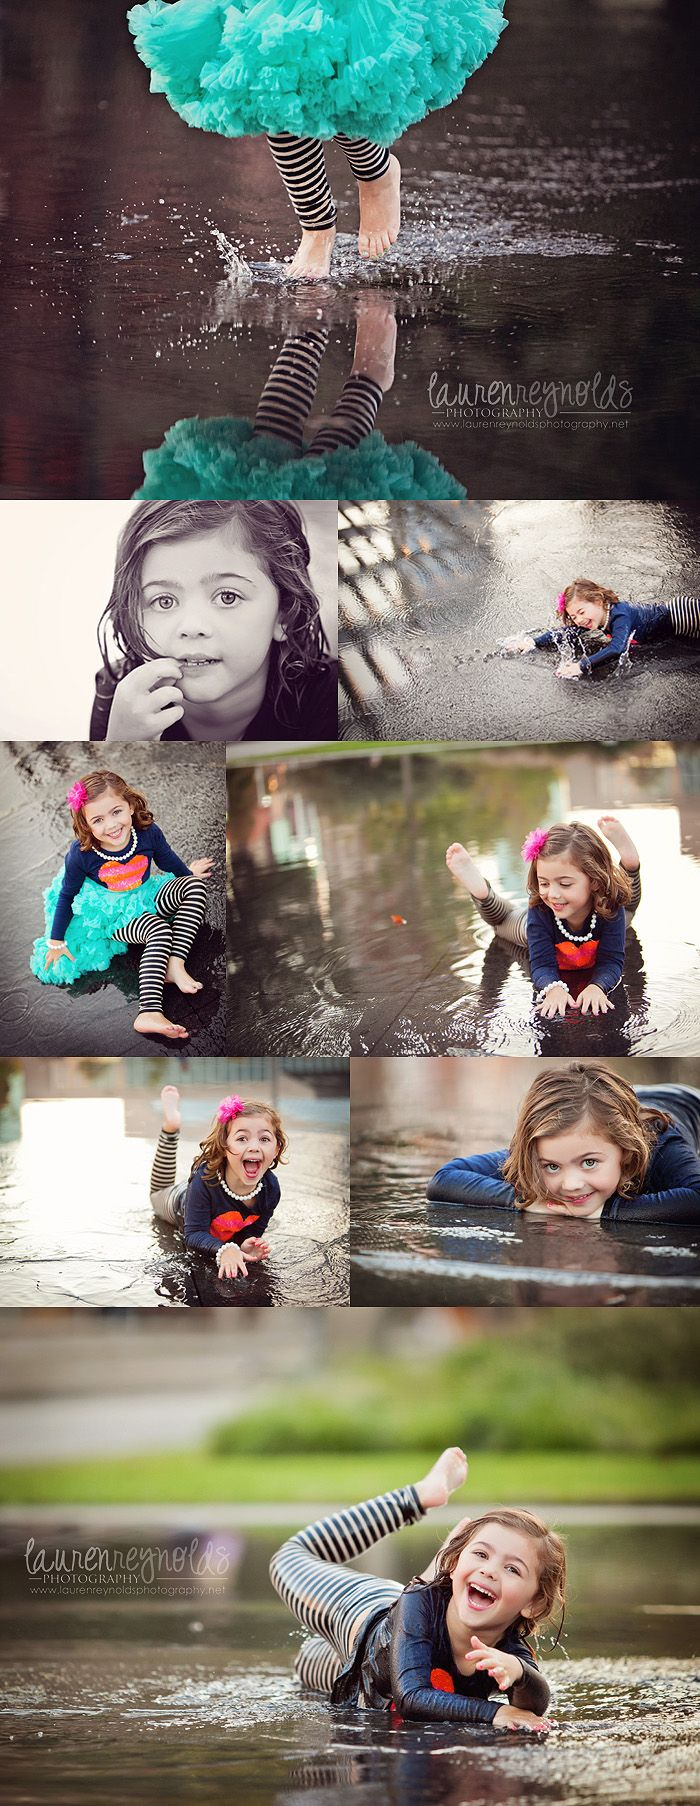 Outdoor Children Photography Ideas